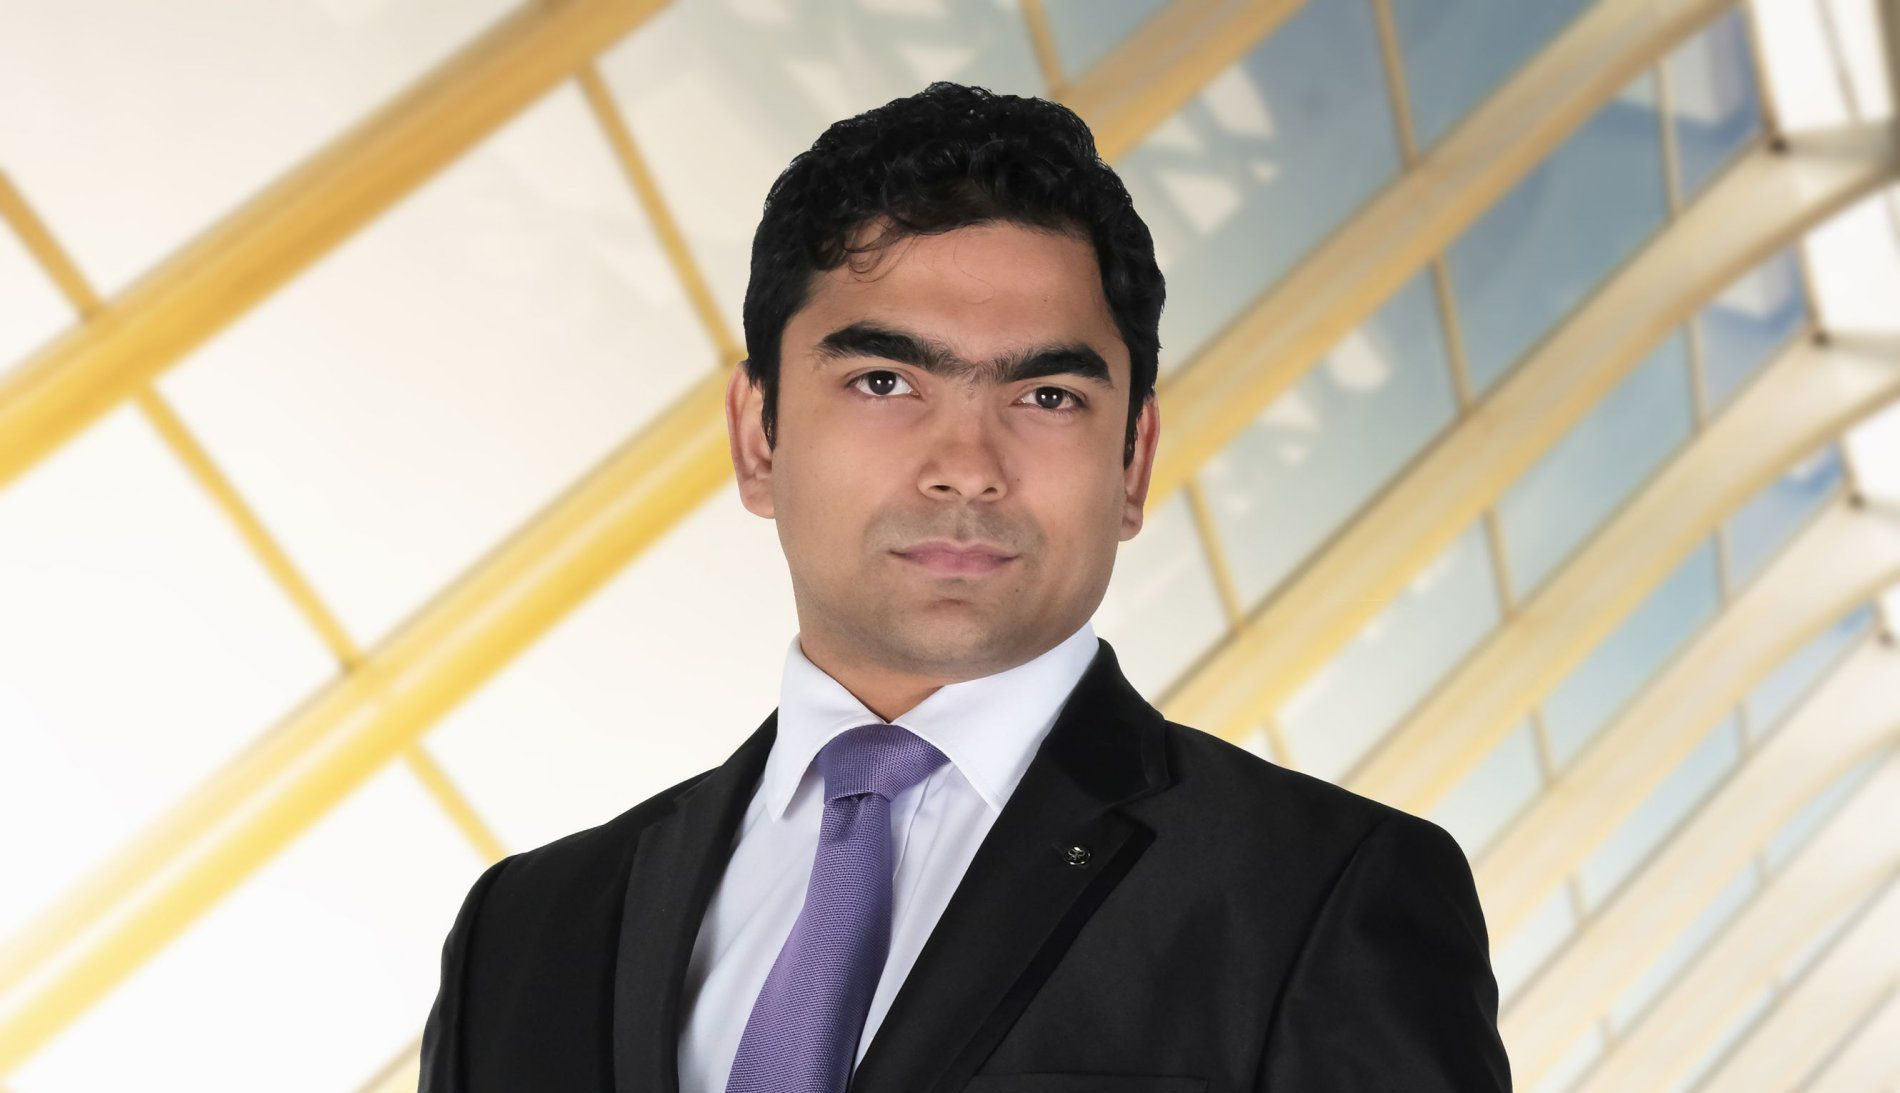 For use in UK, Ireland or Benelux countries only Undated BBC handout photo of Karthik Nagesan, one of the candidates in this year's BBC1 programme, The Apprentice. PRESS ASSOCIATION Photo. Issue date: Tuesday September 27, 2016. See PA story SHOWBIZ Apprentice. Photo credit should read: BBC/PA Wire NOTE TO EDITORS: Not for use more than 21 days after issue. You may use this picture without charge only for the purpose of publicising or reporting on current BBC programming, personnel or other BBC output or activity within 21 days of issue. Any use after that time MUST be cleared through BBC Picture Publicity. Please credit the image to the BBC and any named photographer or independent programme maker, as described in the caption.